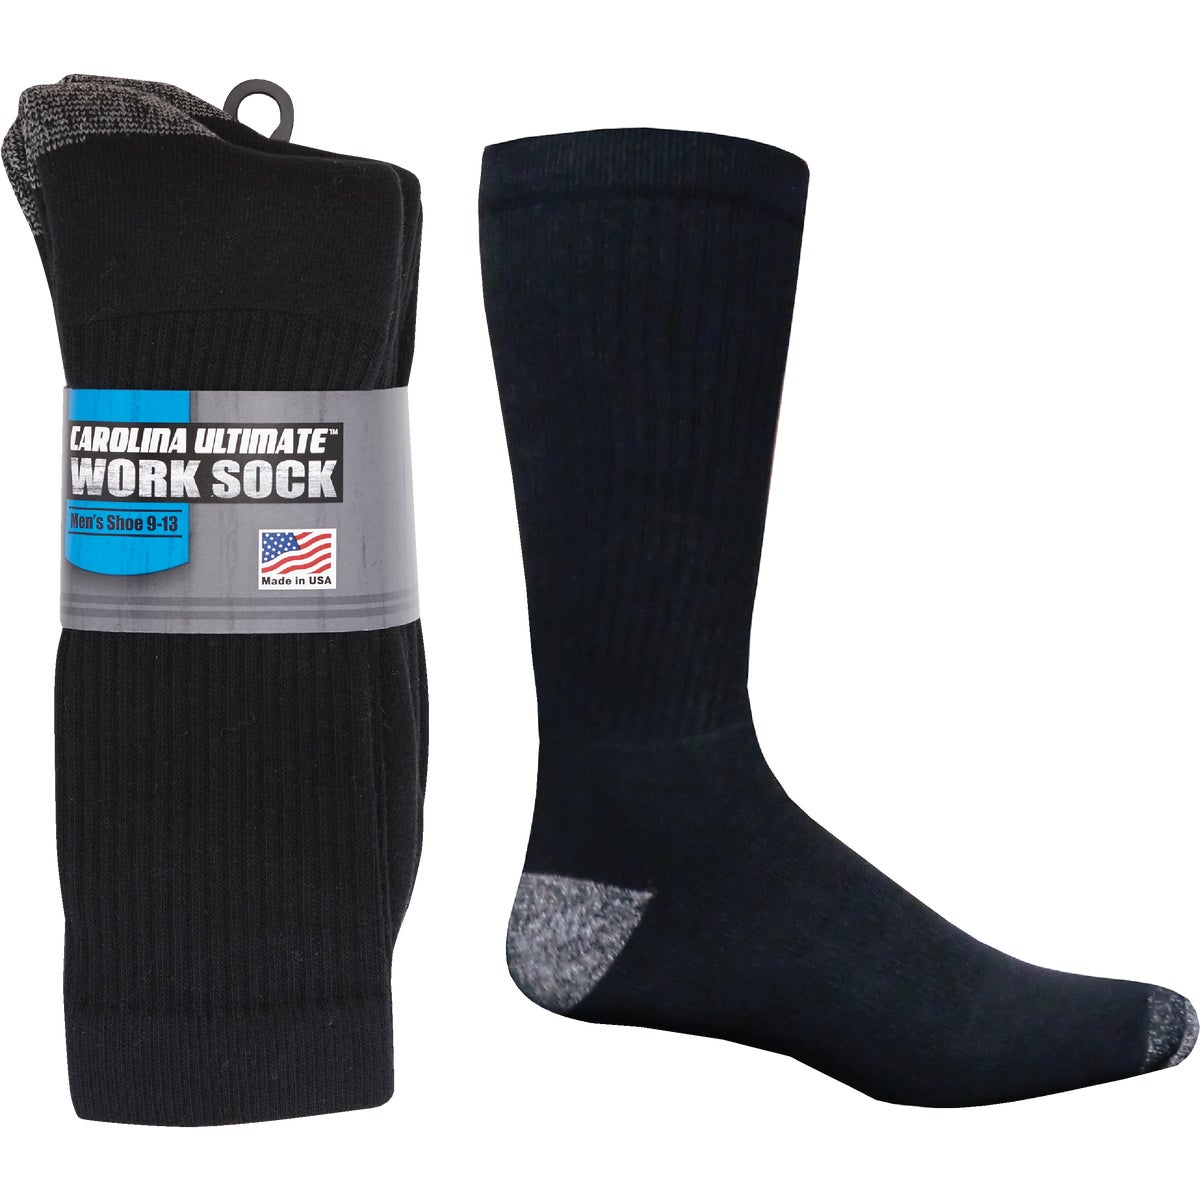 3PK BLK LG AT WORK SOCK